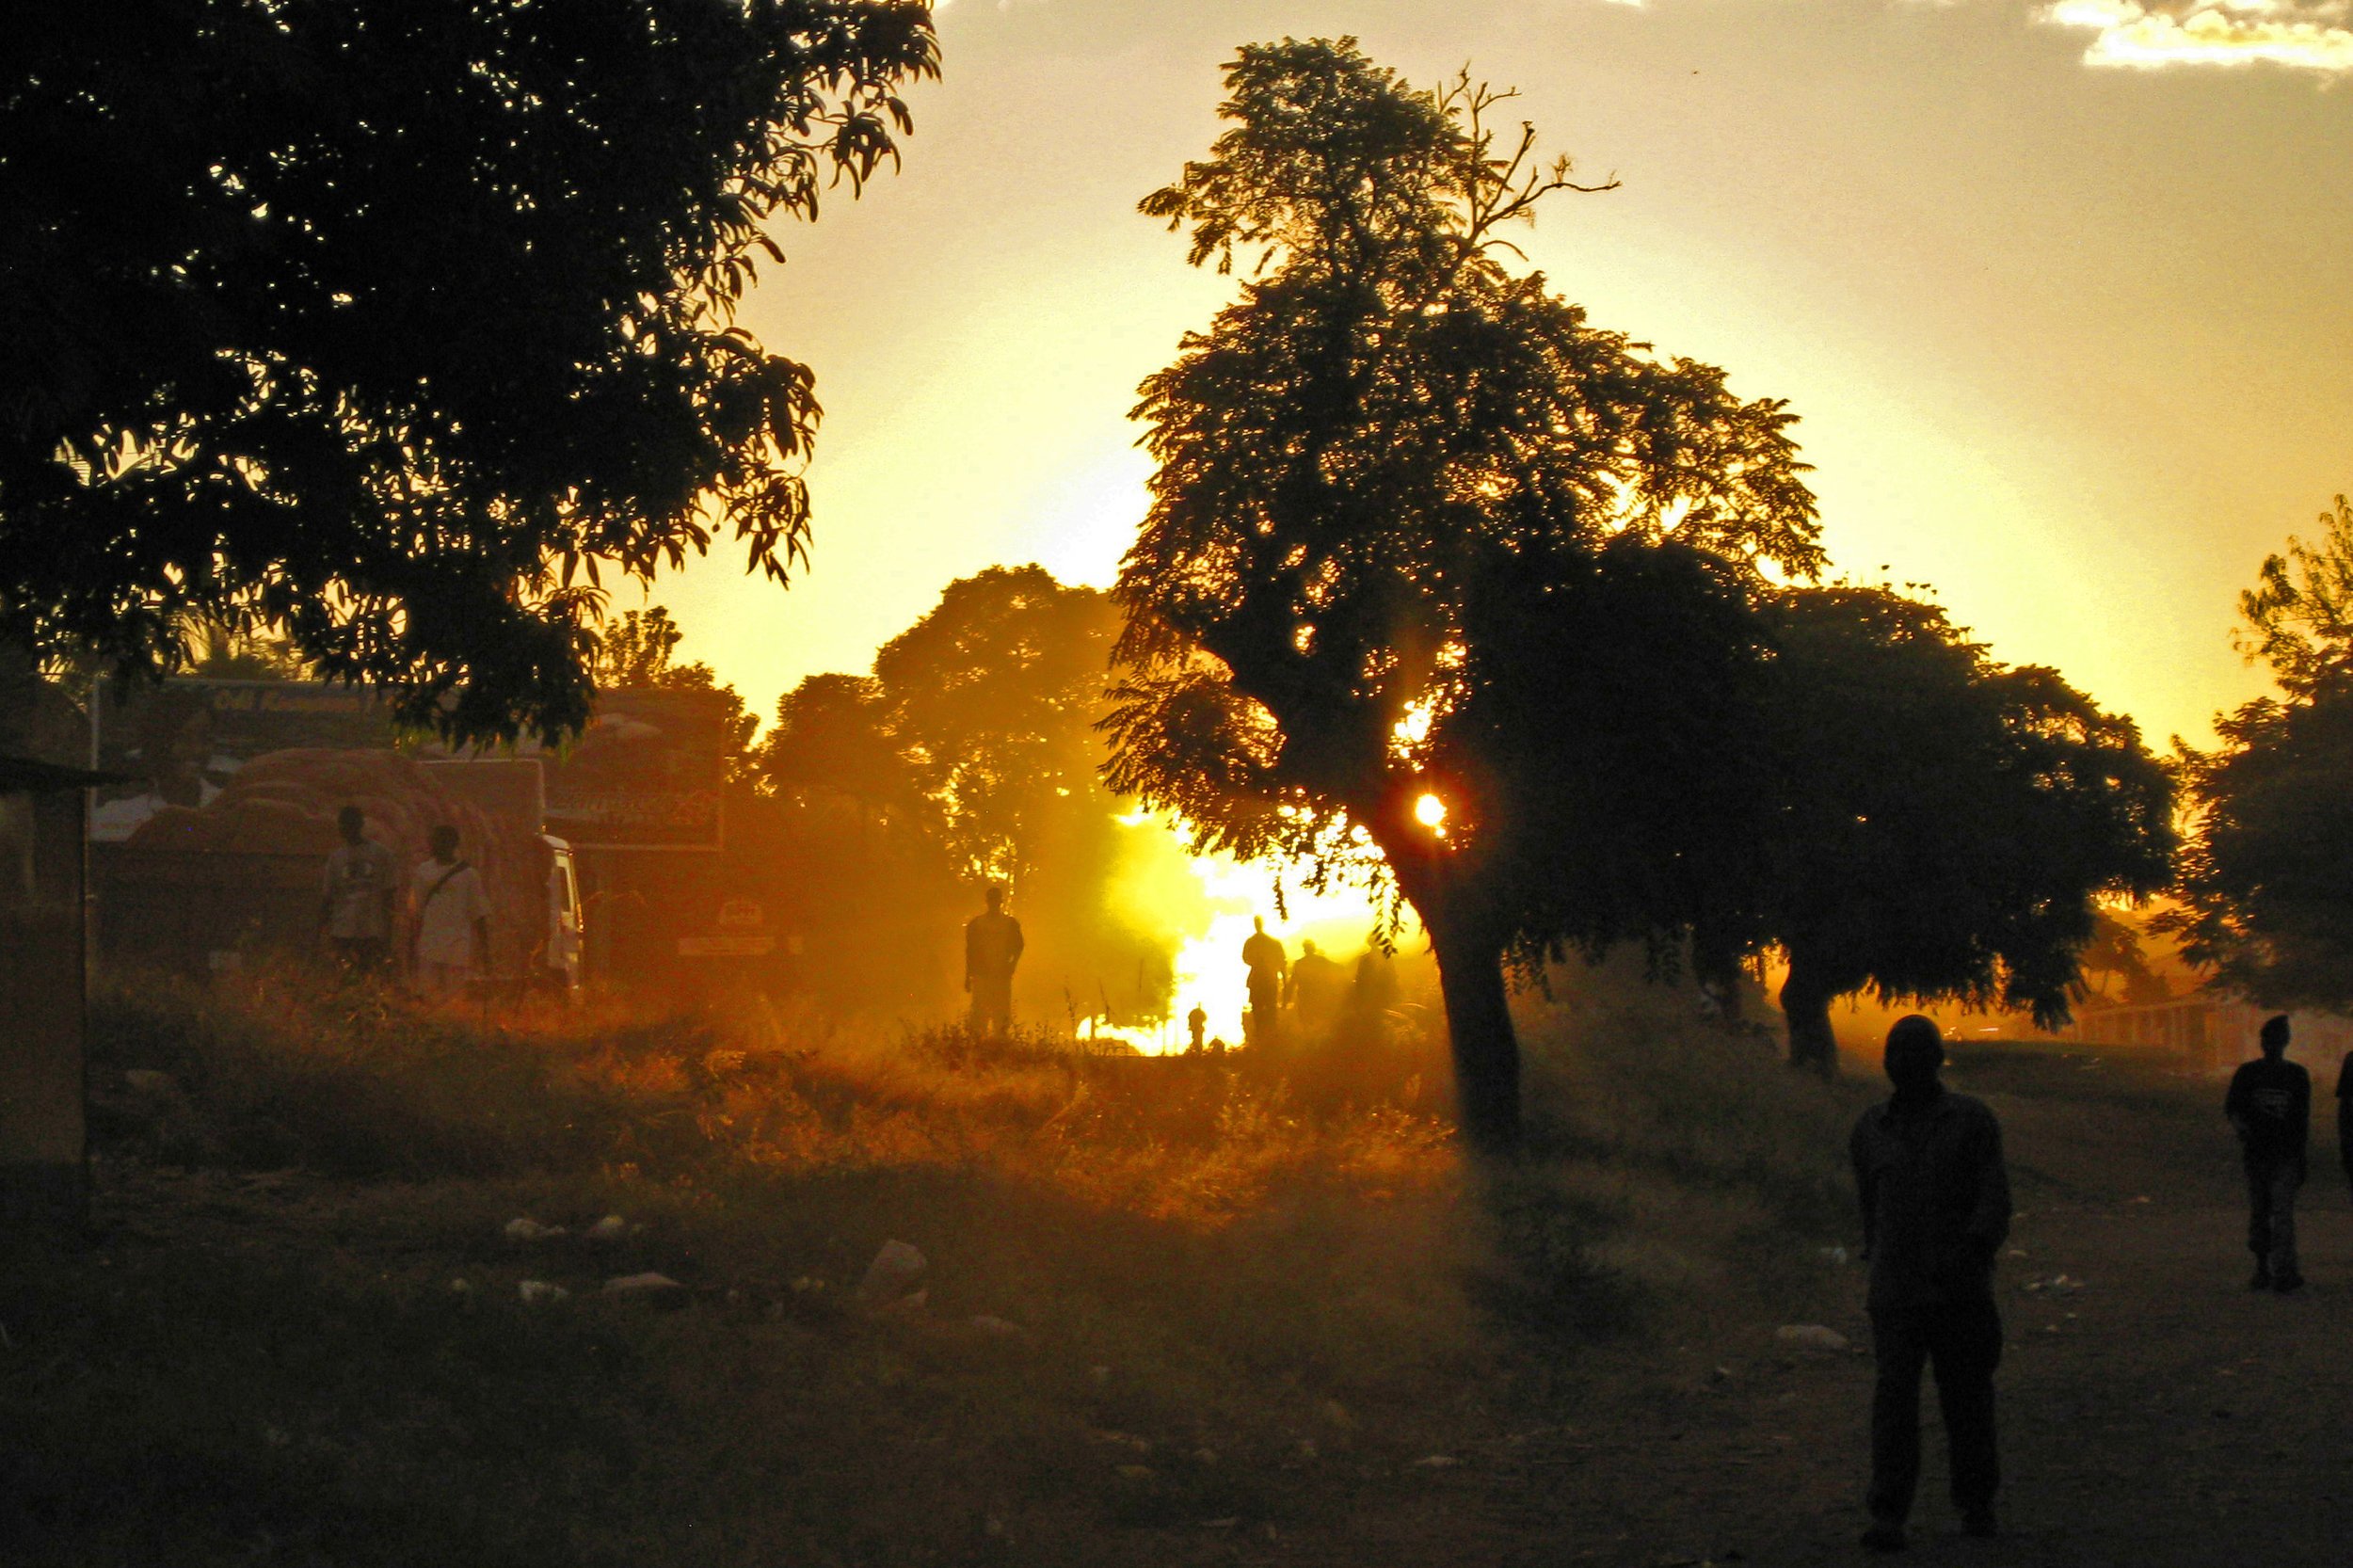 Dusty sunset along the main road in Chipata